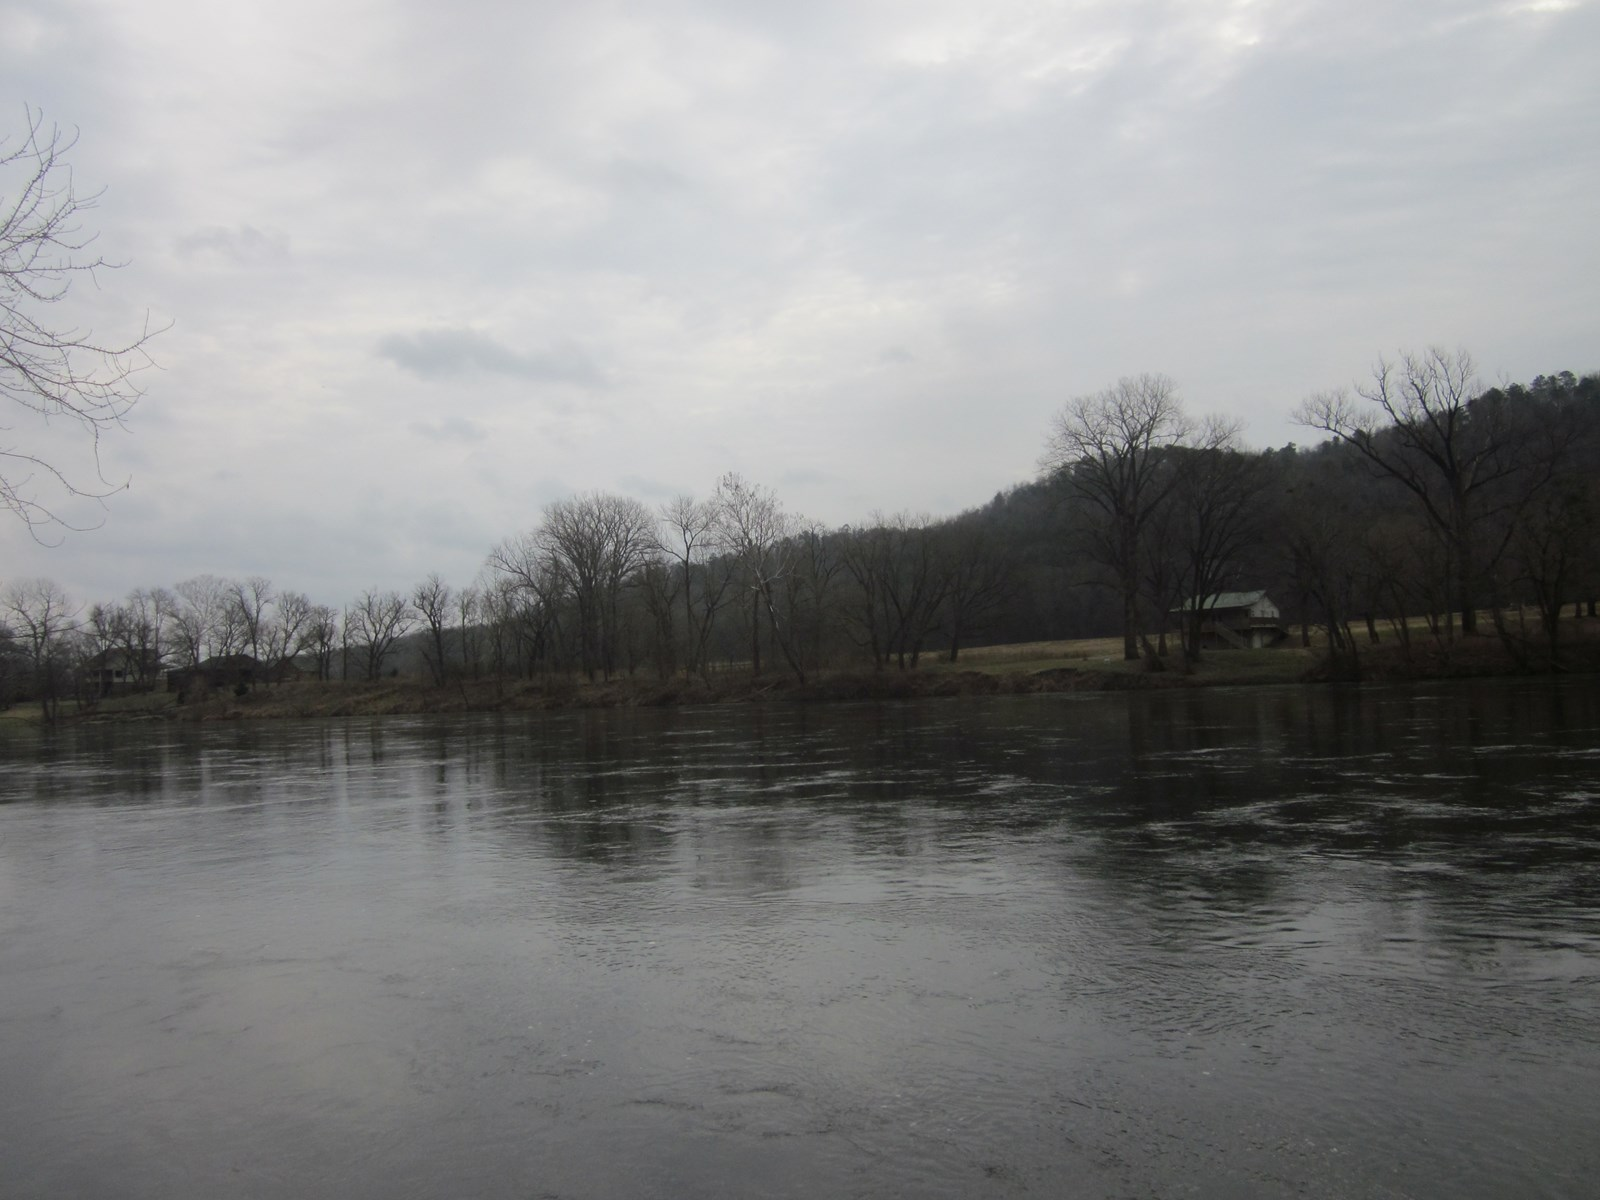 River Property for Sale in the Ozarks